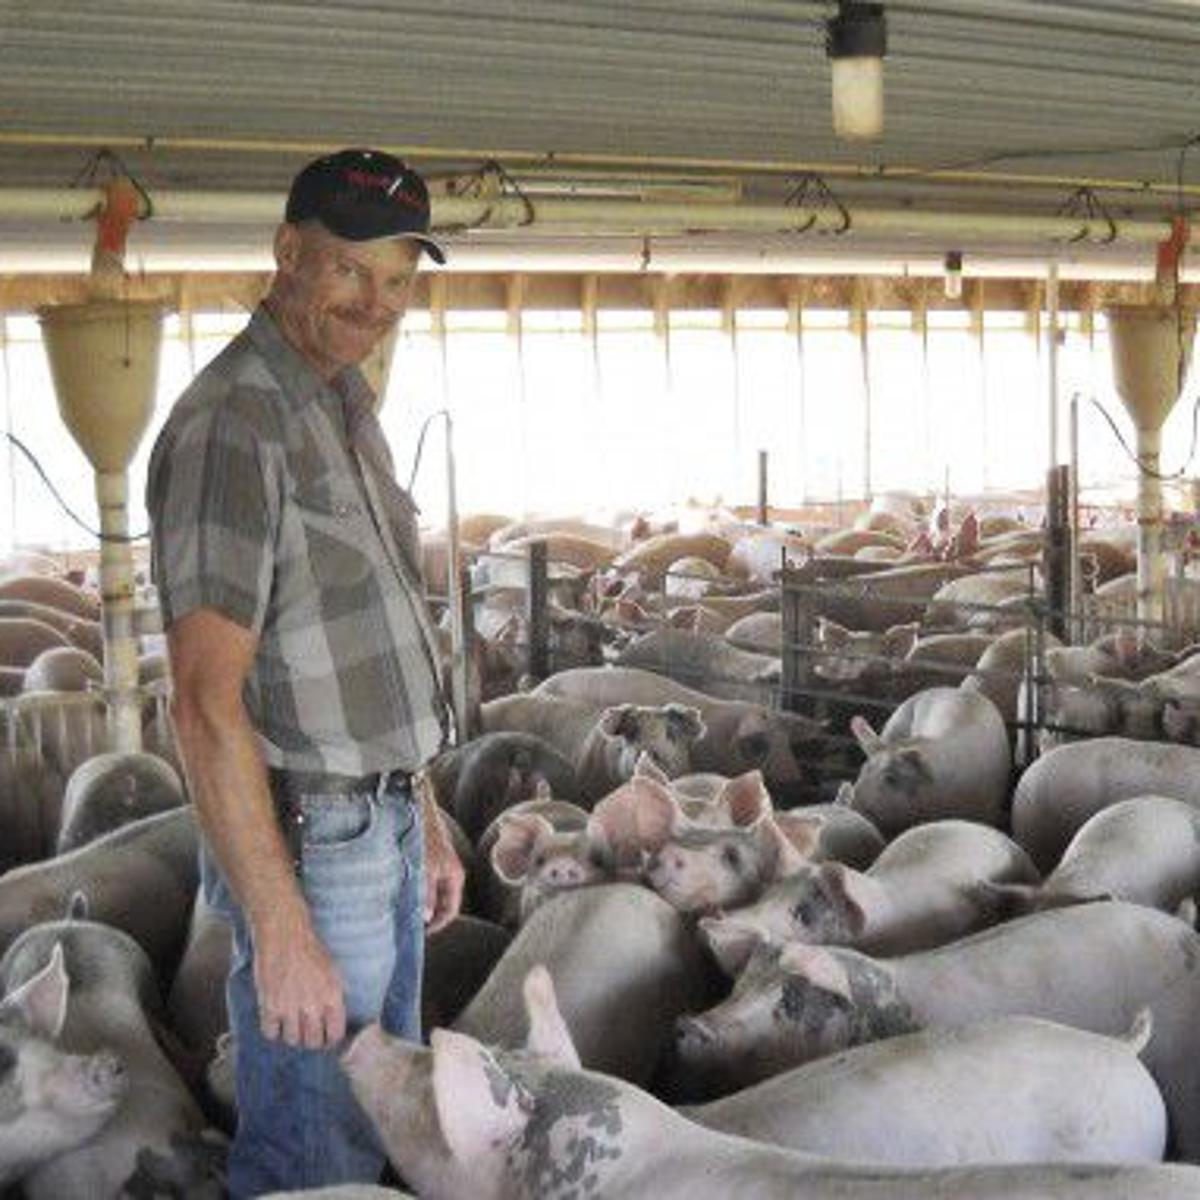 Epilogue: Farmer takes the waste and odor out of hog manure